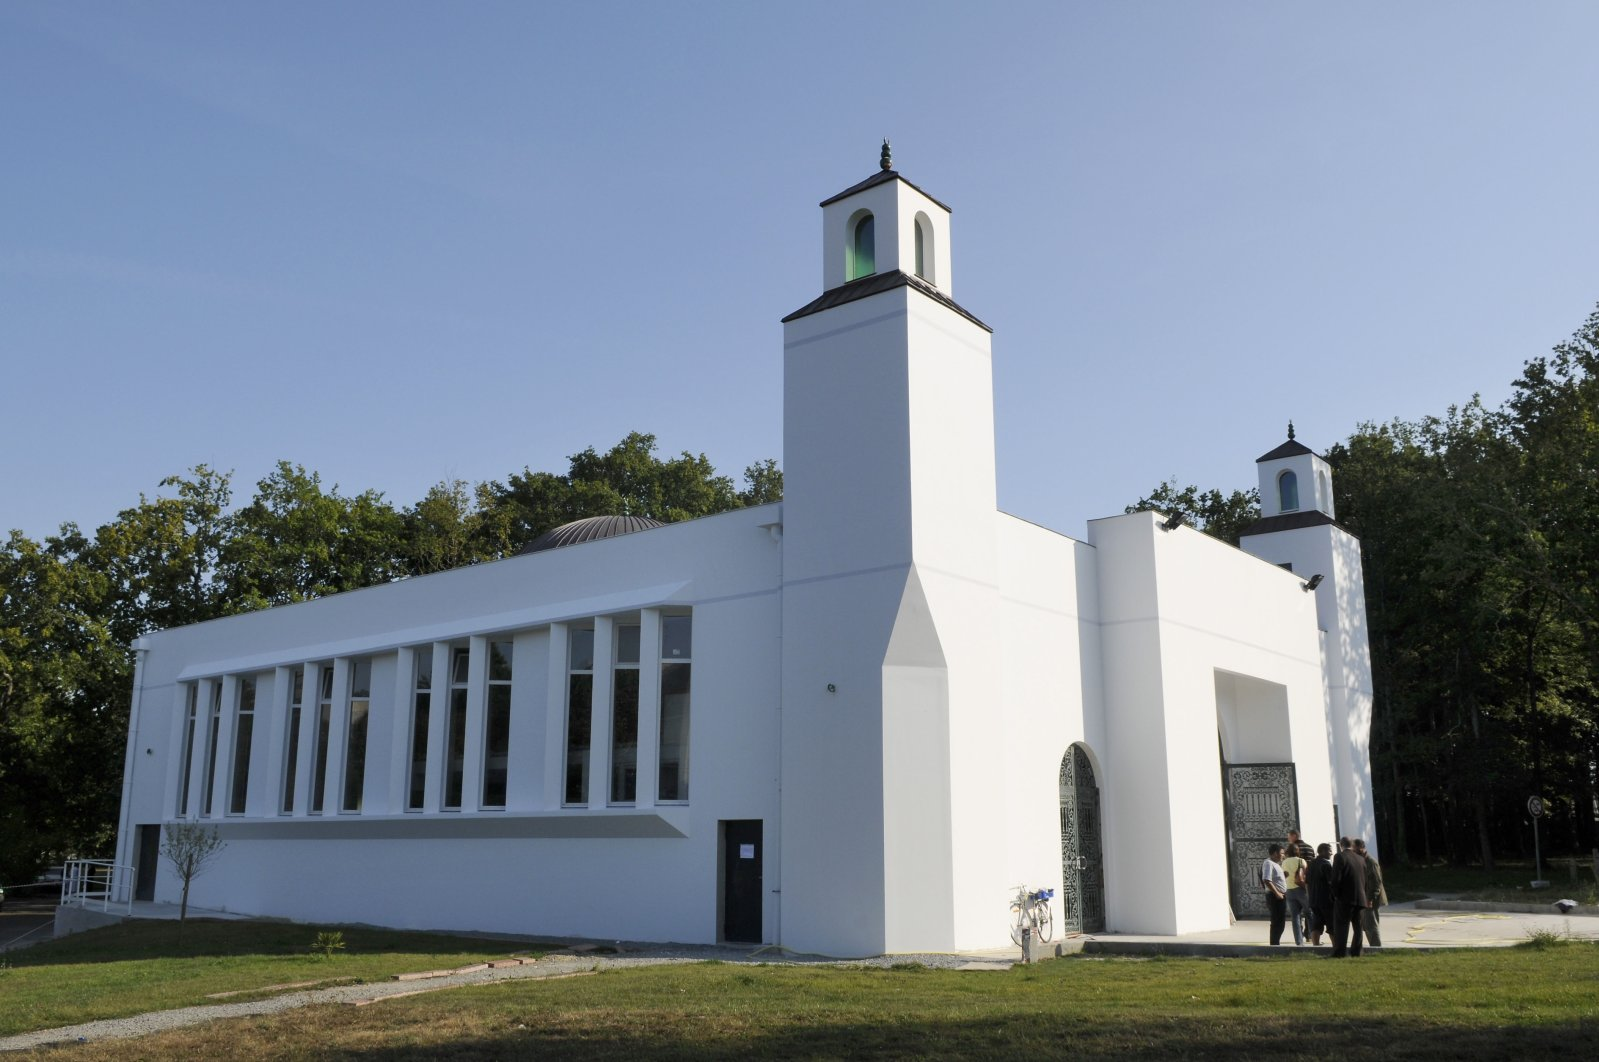 The Arrahma mosque in France's northern region of Nantes. The mosque was inaugurated after two years of construction and can accommodate up to 1,300 worshippers, Nantes, France, Sept. 9, 2009. (Getty Images)